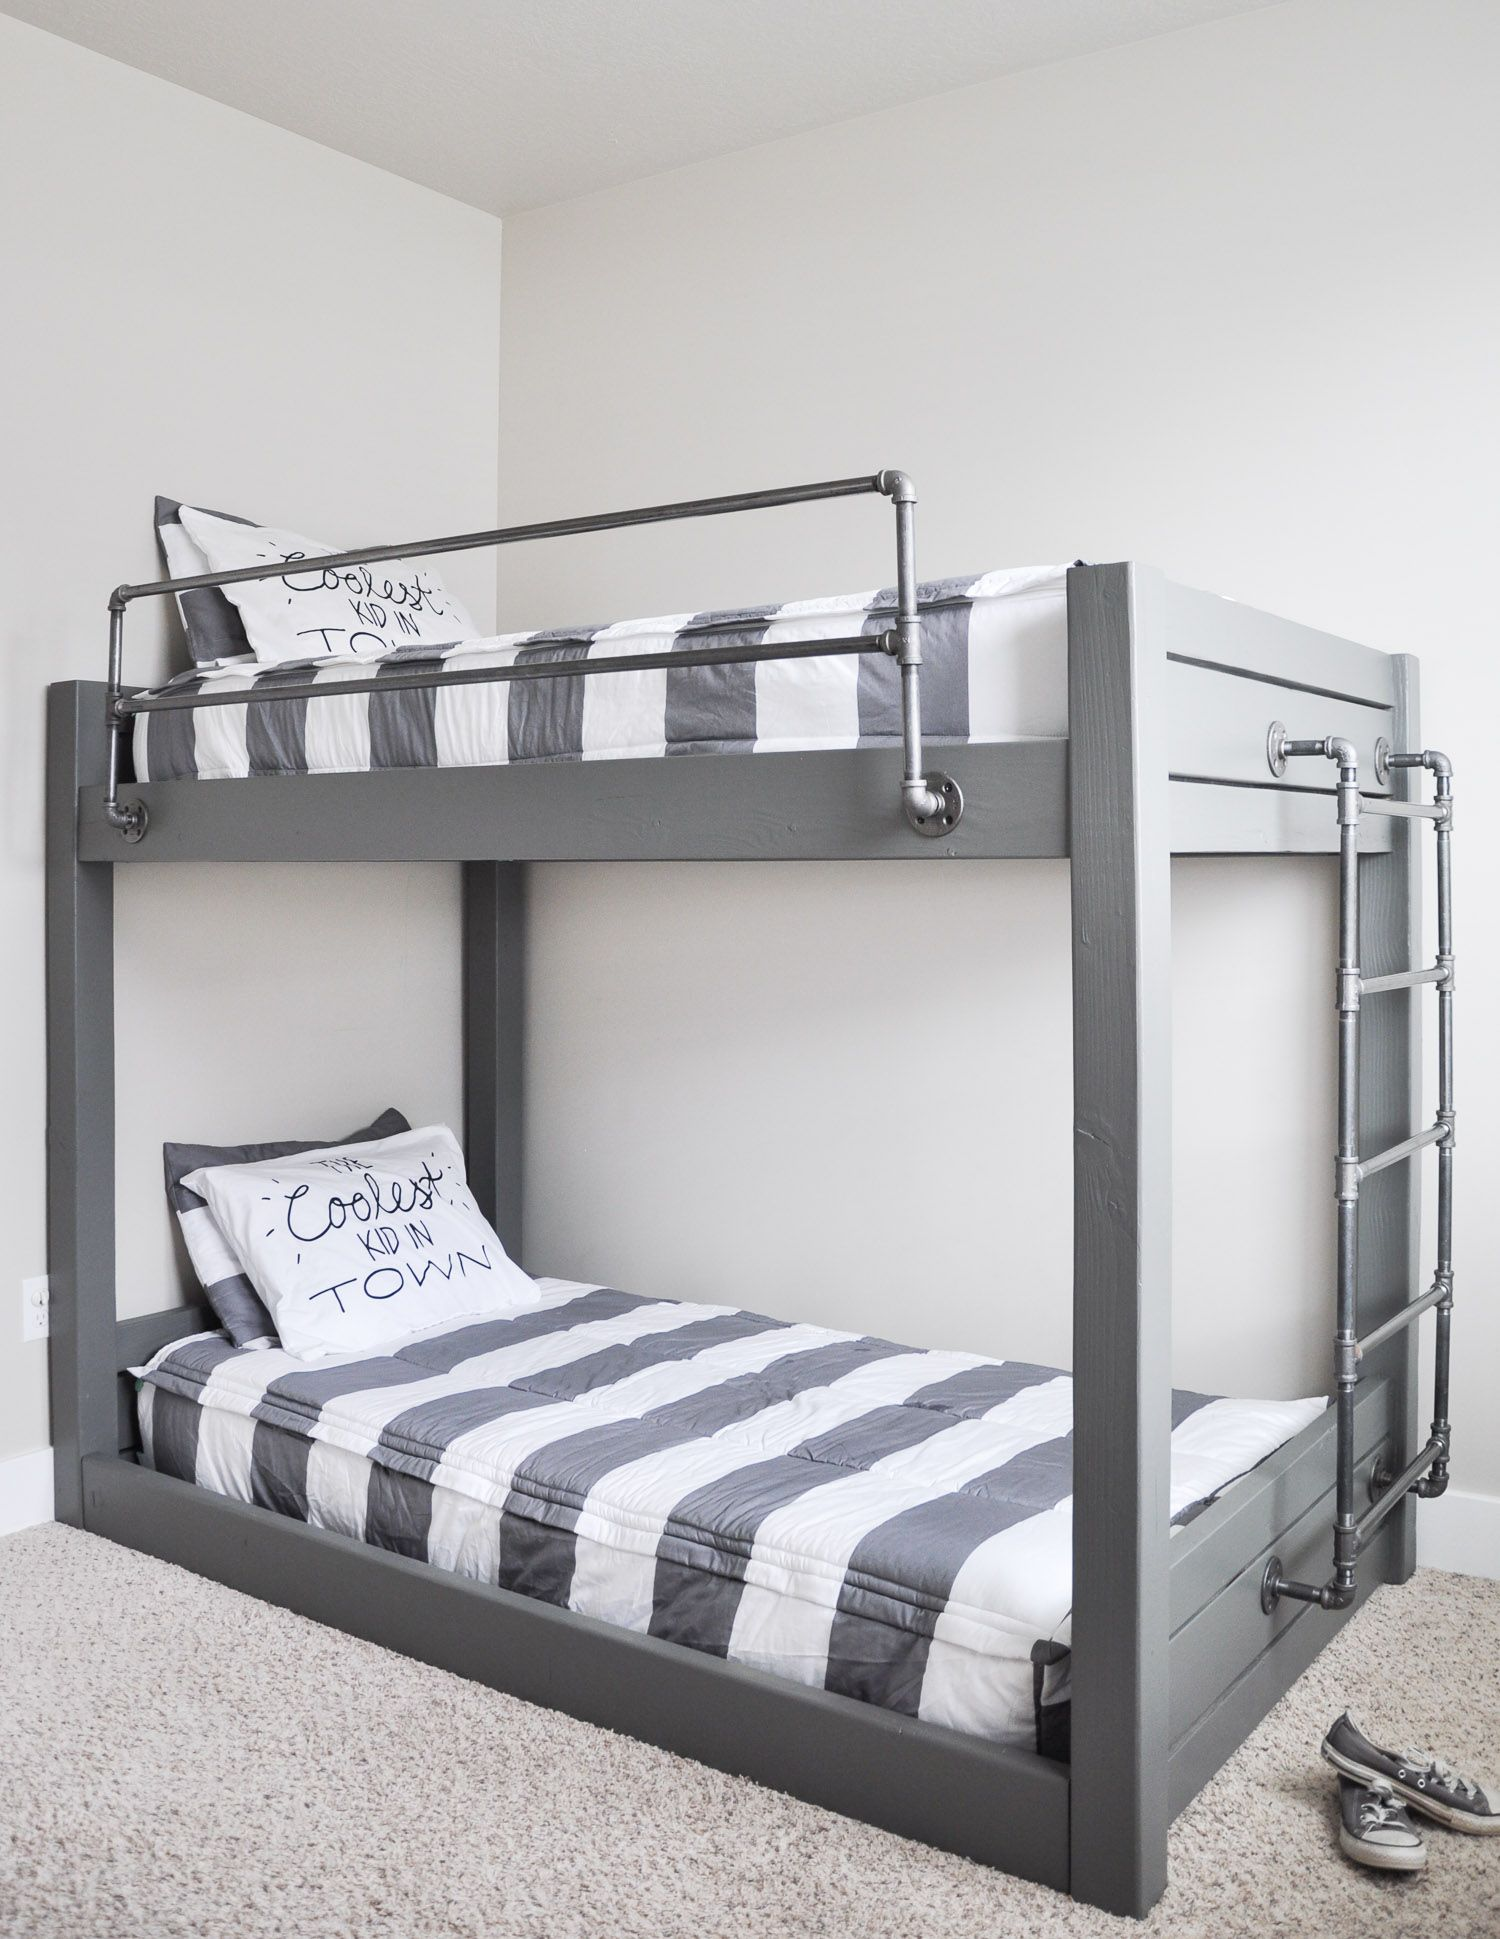 Double Bunk Beds Diy Industrial Bunk Bed Free Plans Jwb Bunk Beds For